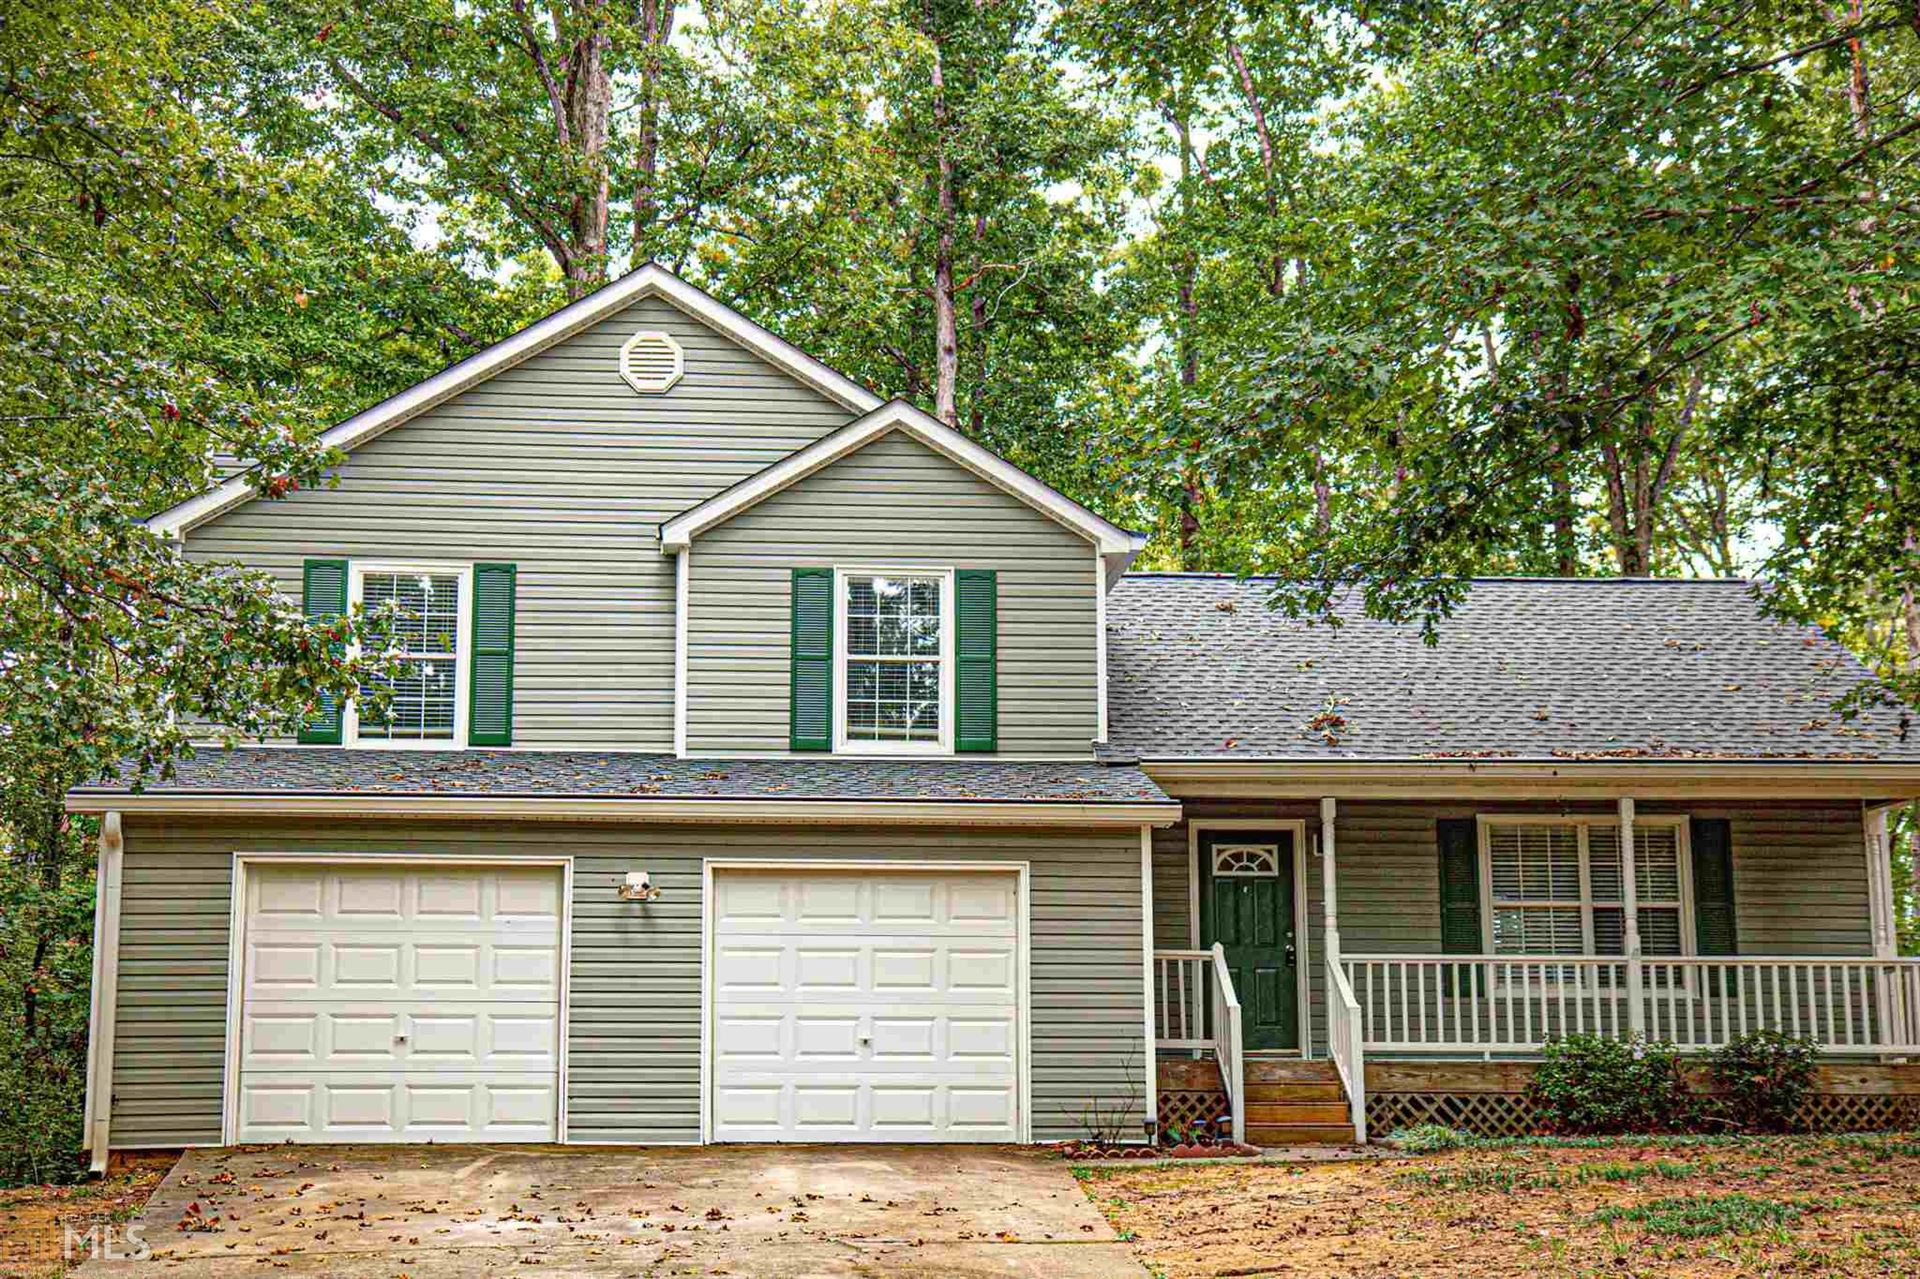 333 Mill Glen Ct, McDonough, GA 30252 - #: 8877827